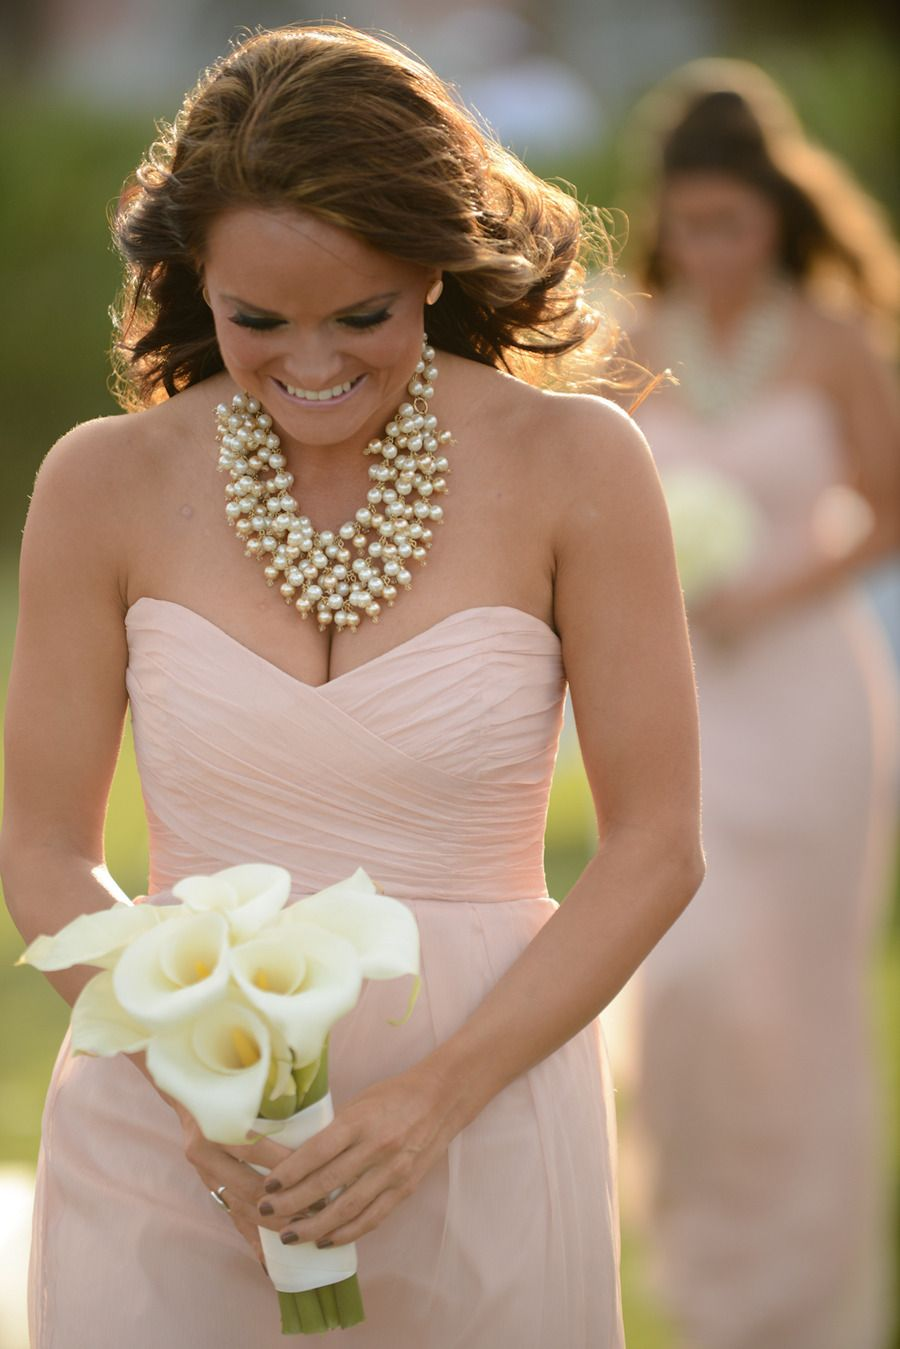 Gorgeous Bridesmaid Look Blush Dress Simple Calla Lily Bouquet And Clic Pearls